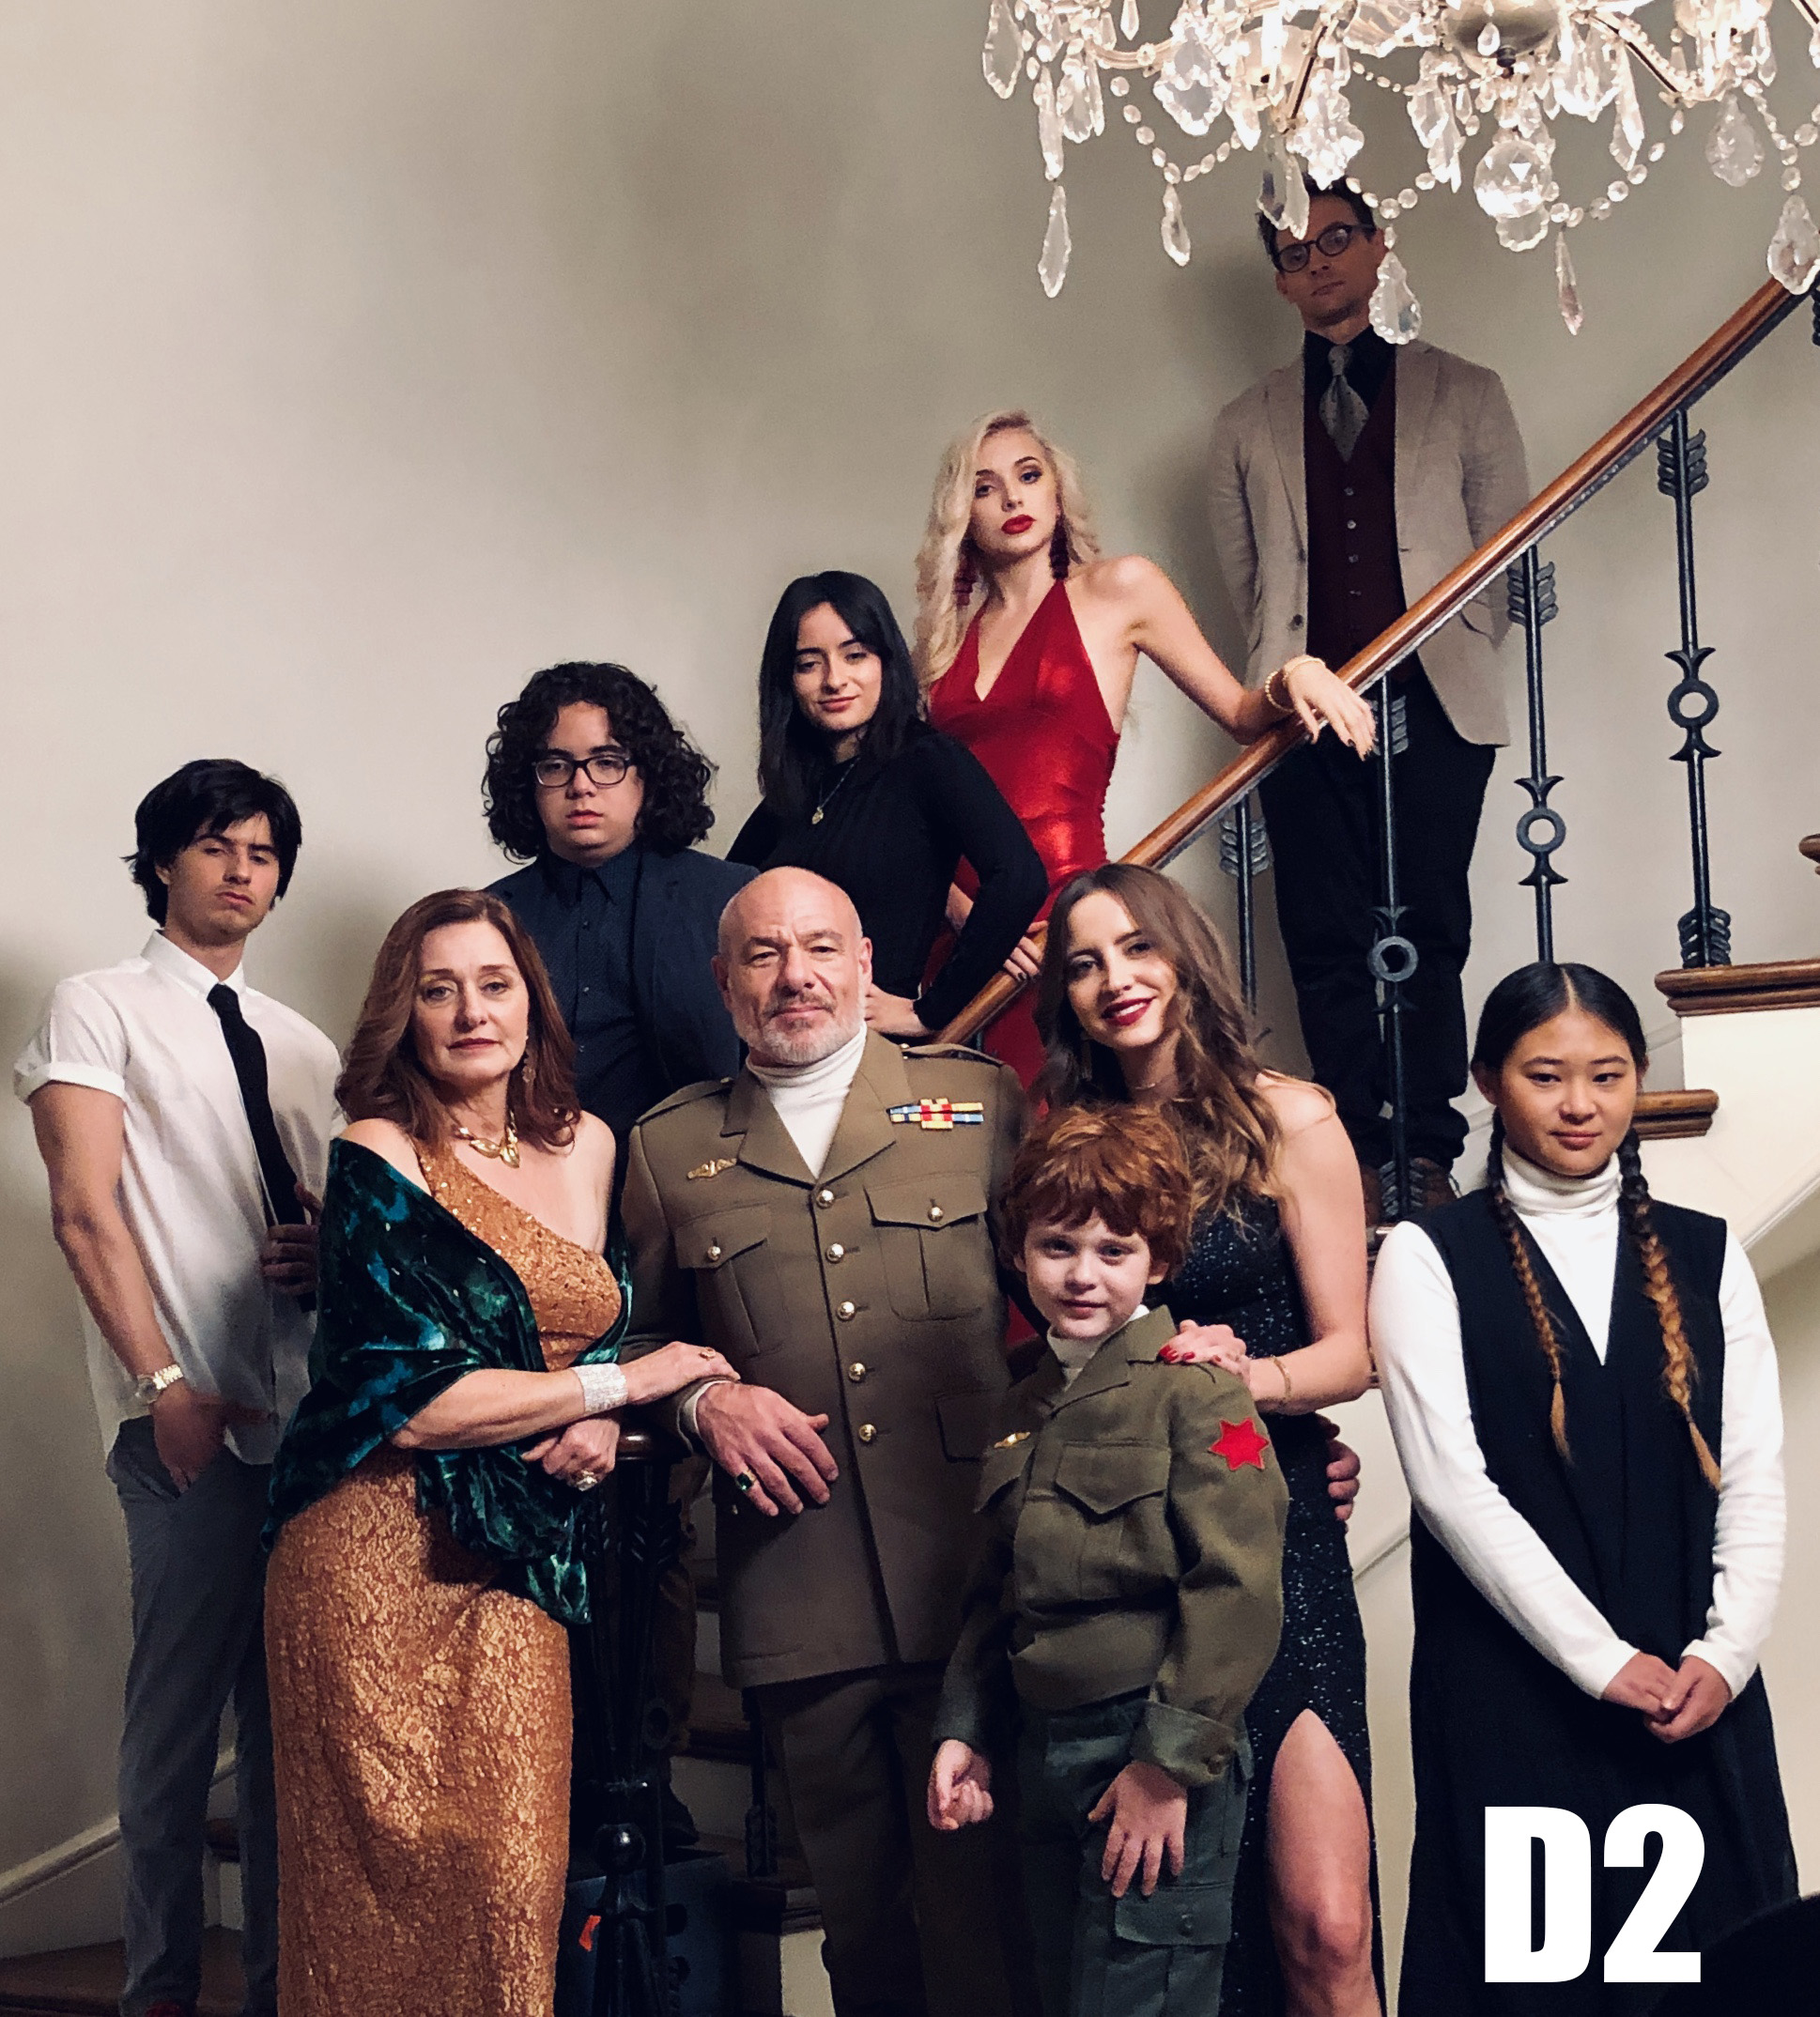 D2  (2019)(In Post-production)(TV Series Pilot) - Credit: 1st Assistant DirectorGenre: Comedy/DramaDirected by Mario GarzaSynopsis:During the dinner of an atypical family, the flaws of each member start to stand out. Country: USA